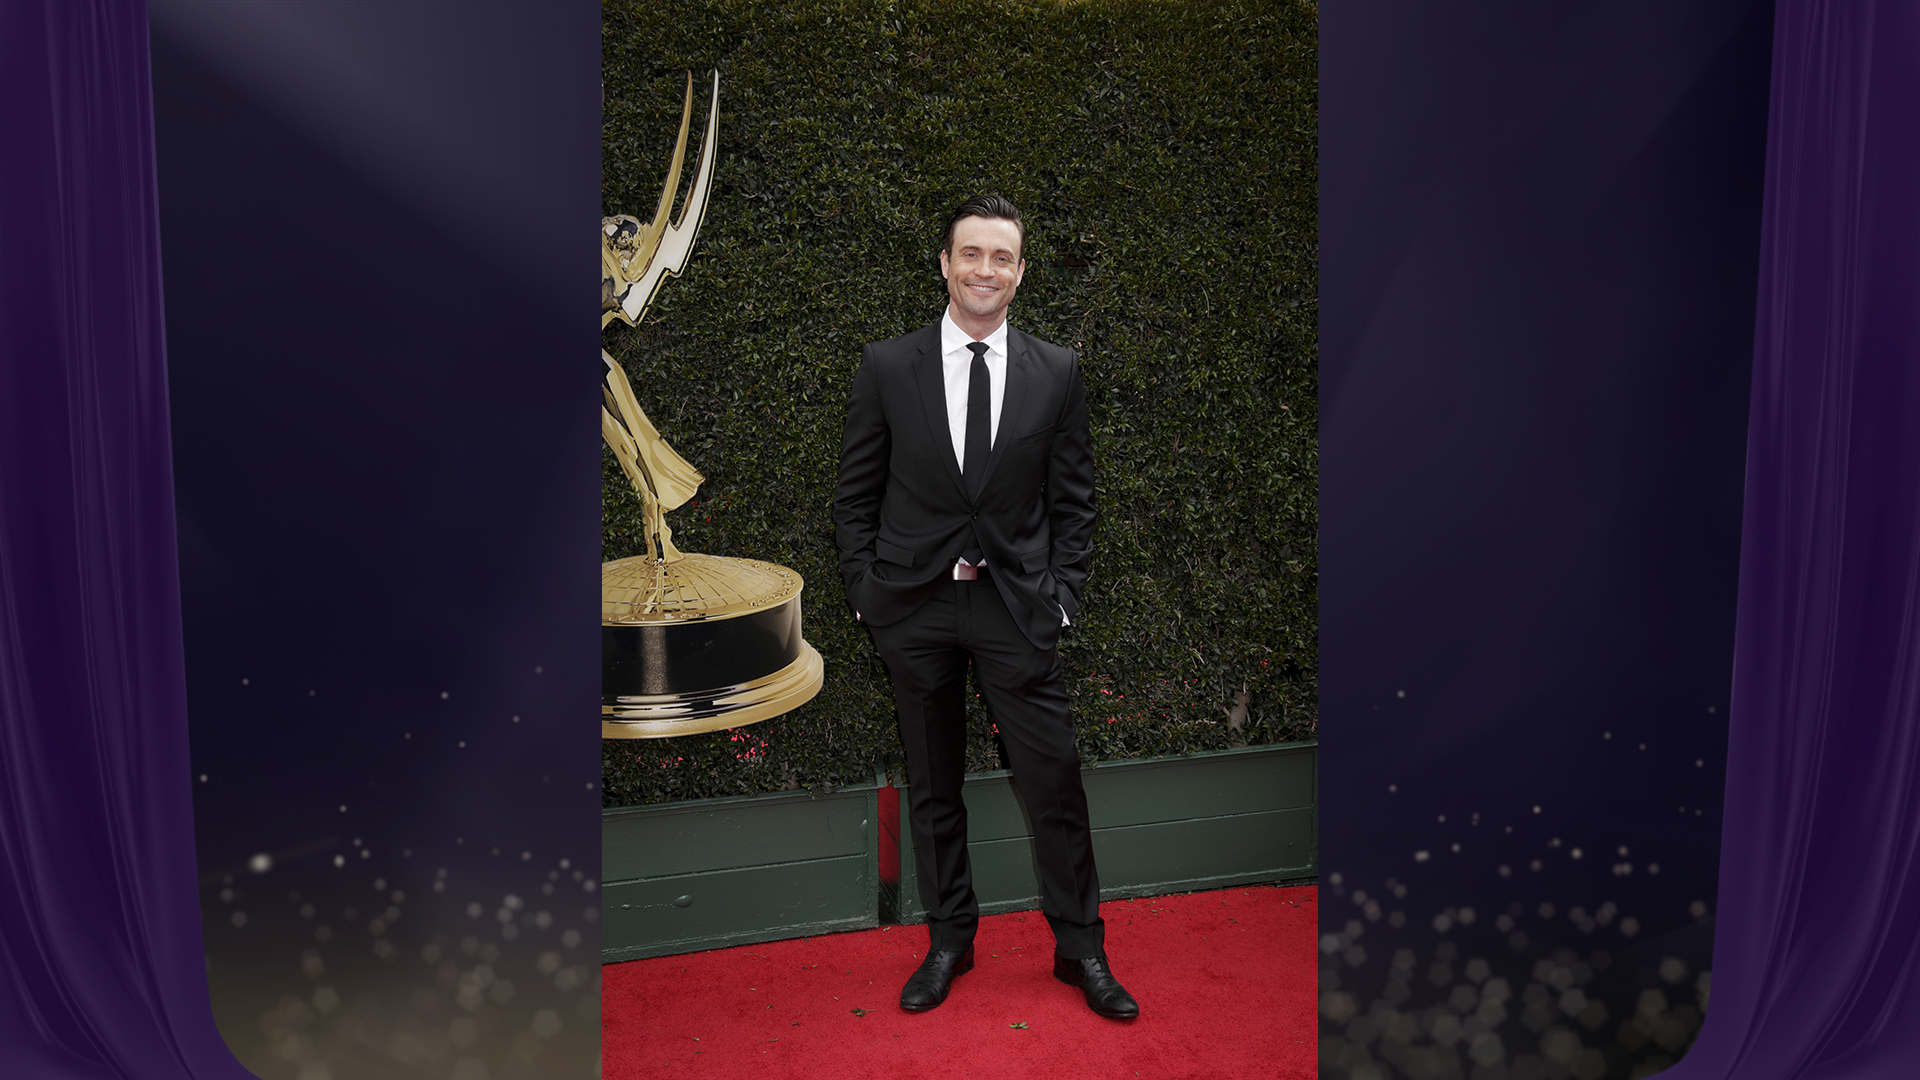 Daniel Goddard from The Young and the Restless shows off his shiny silver belt buckle while posing on the red carpet.